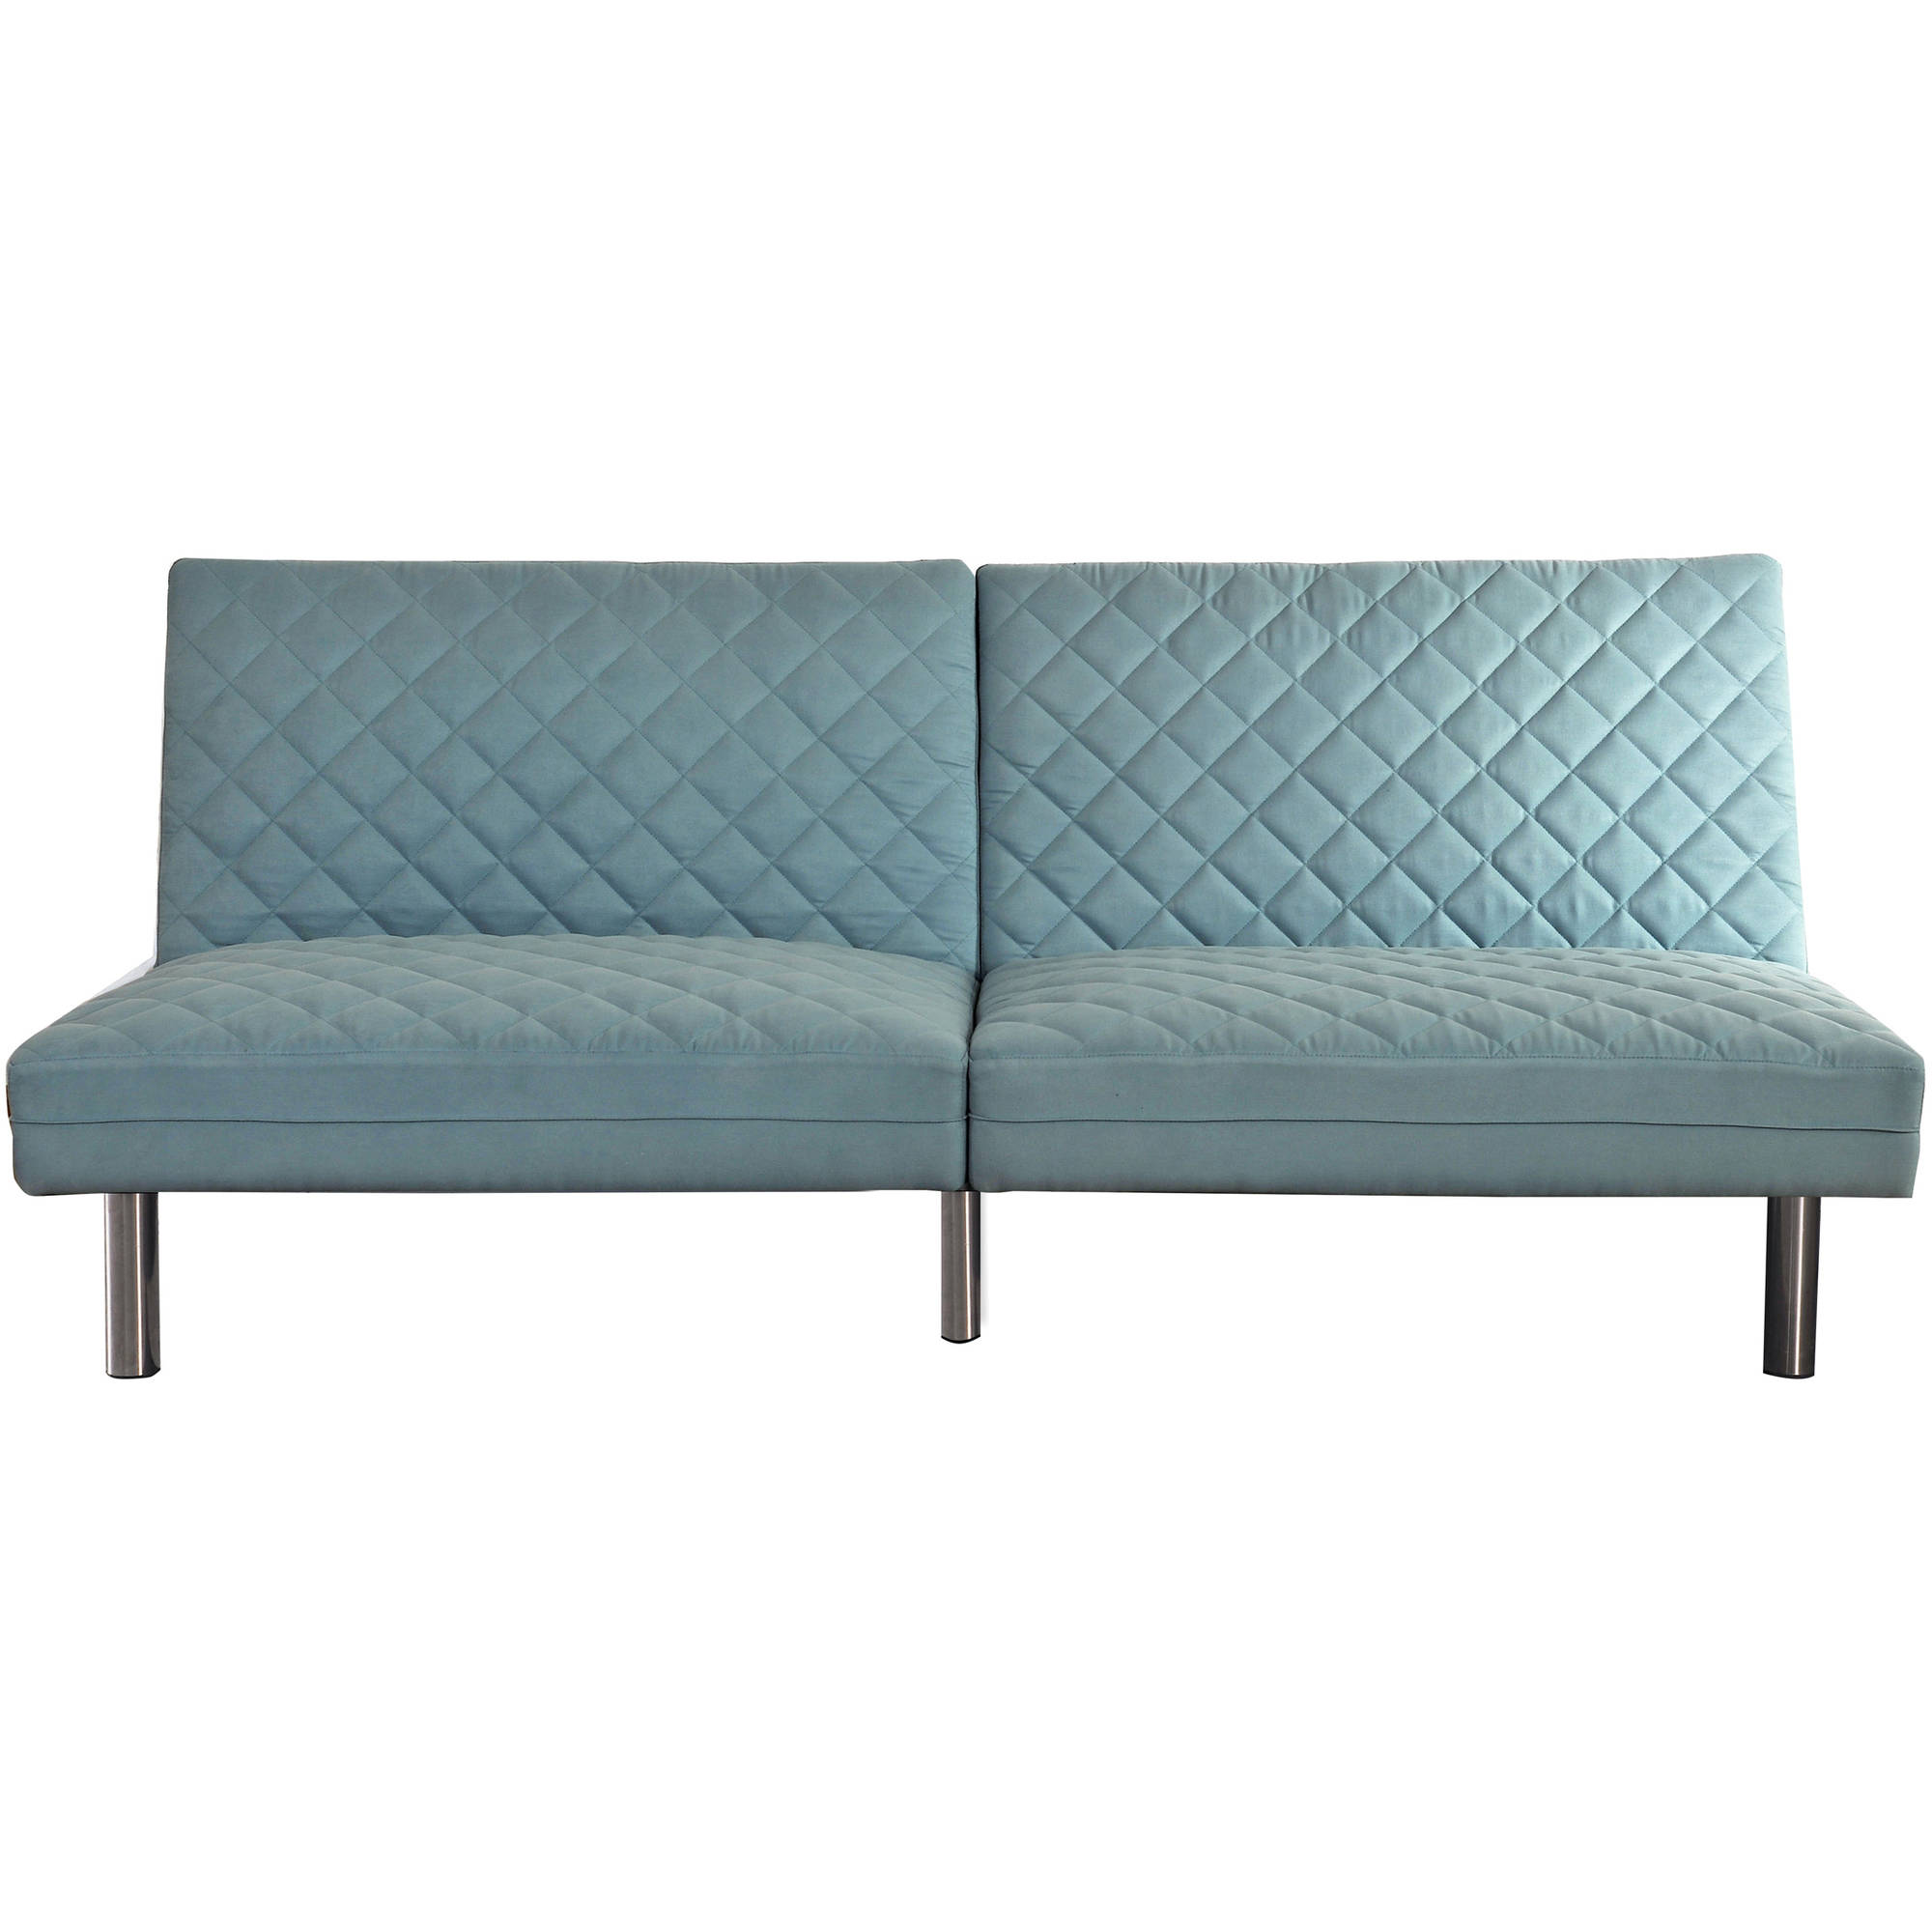 50 inch futon 50 inch long futon and 50 inch wide futon for Wide sofa bed